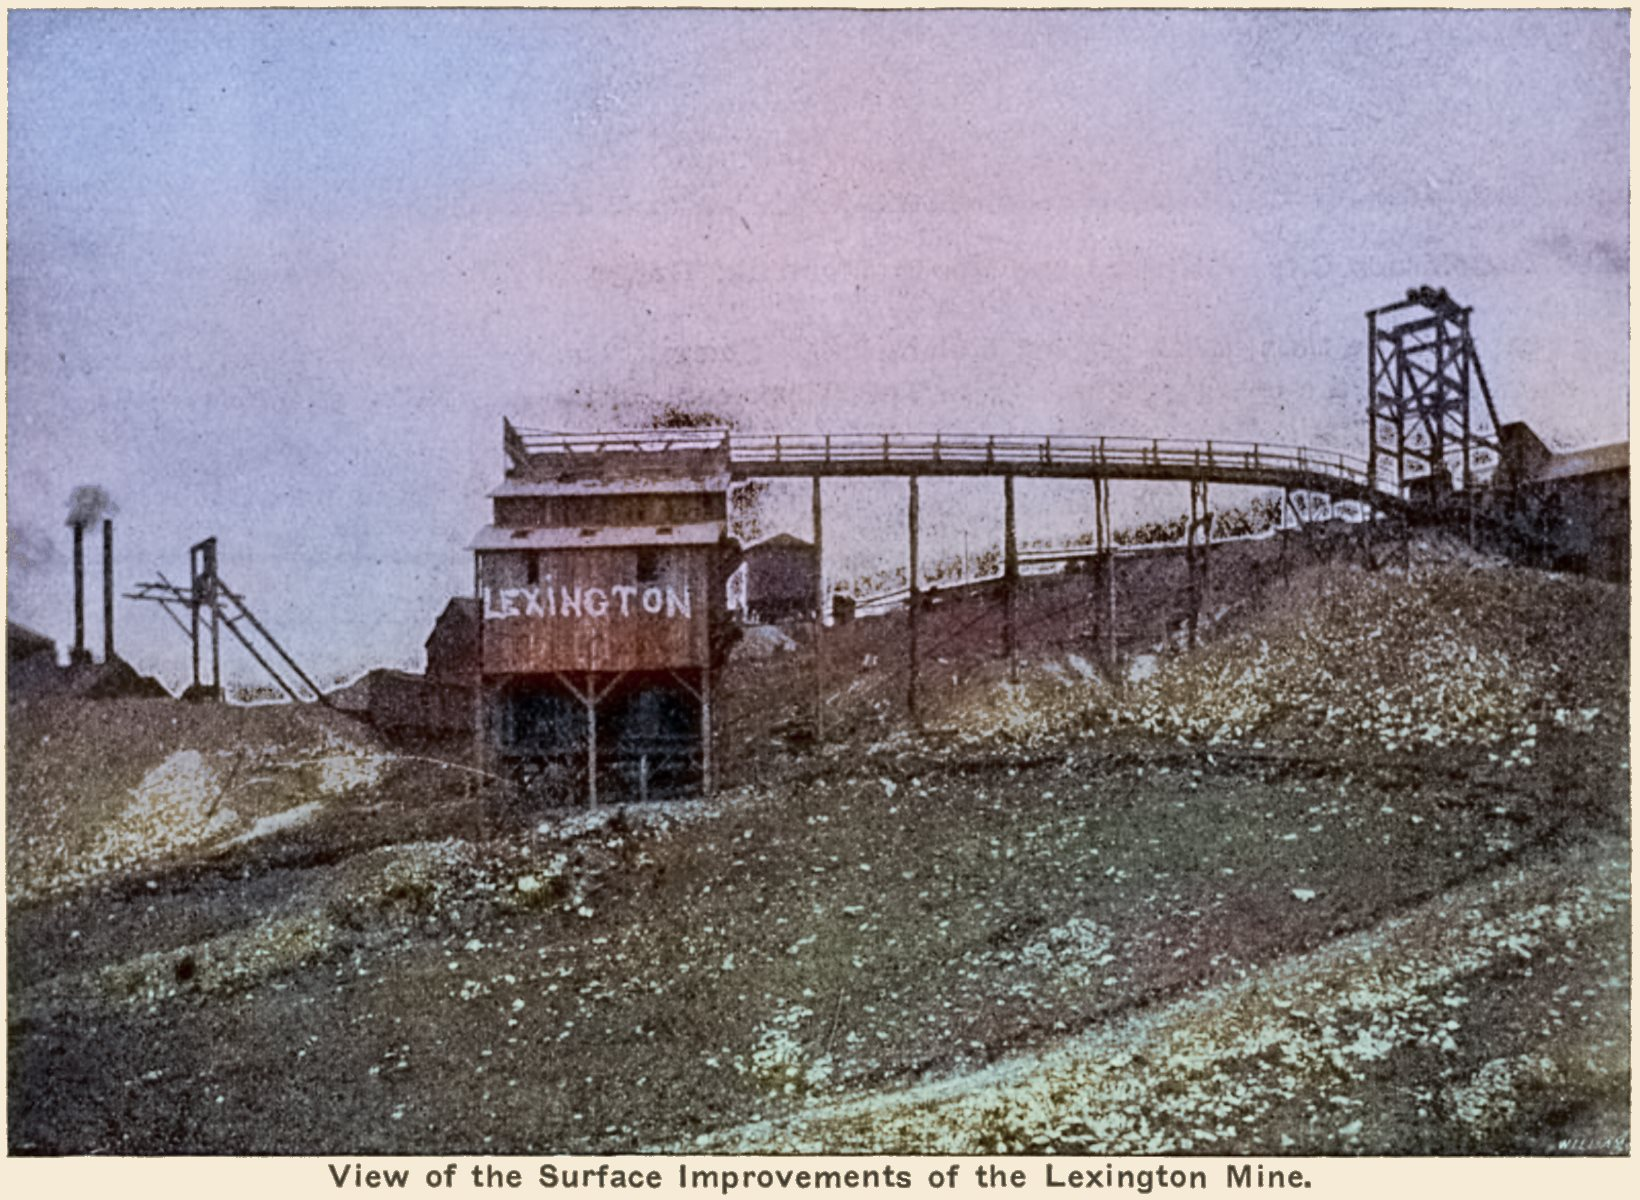 View of the Surface Improvements of the Lexington Mine.